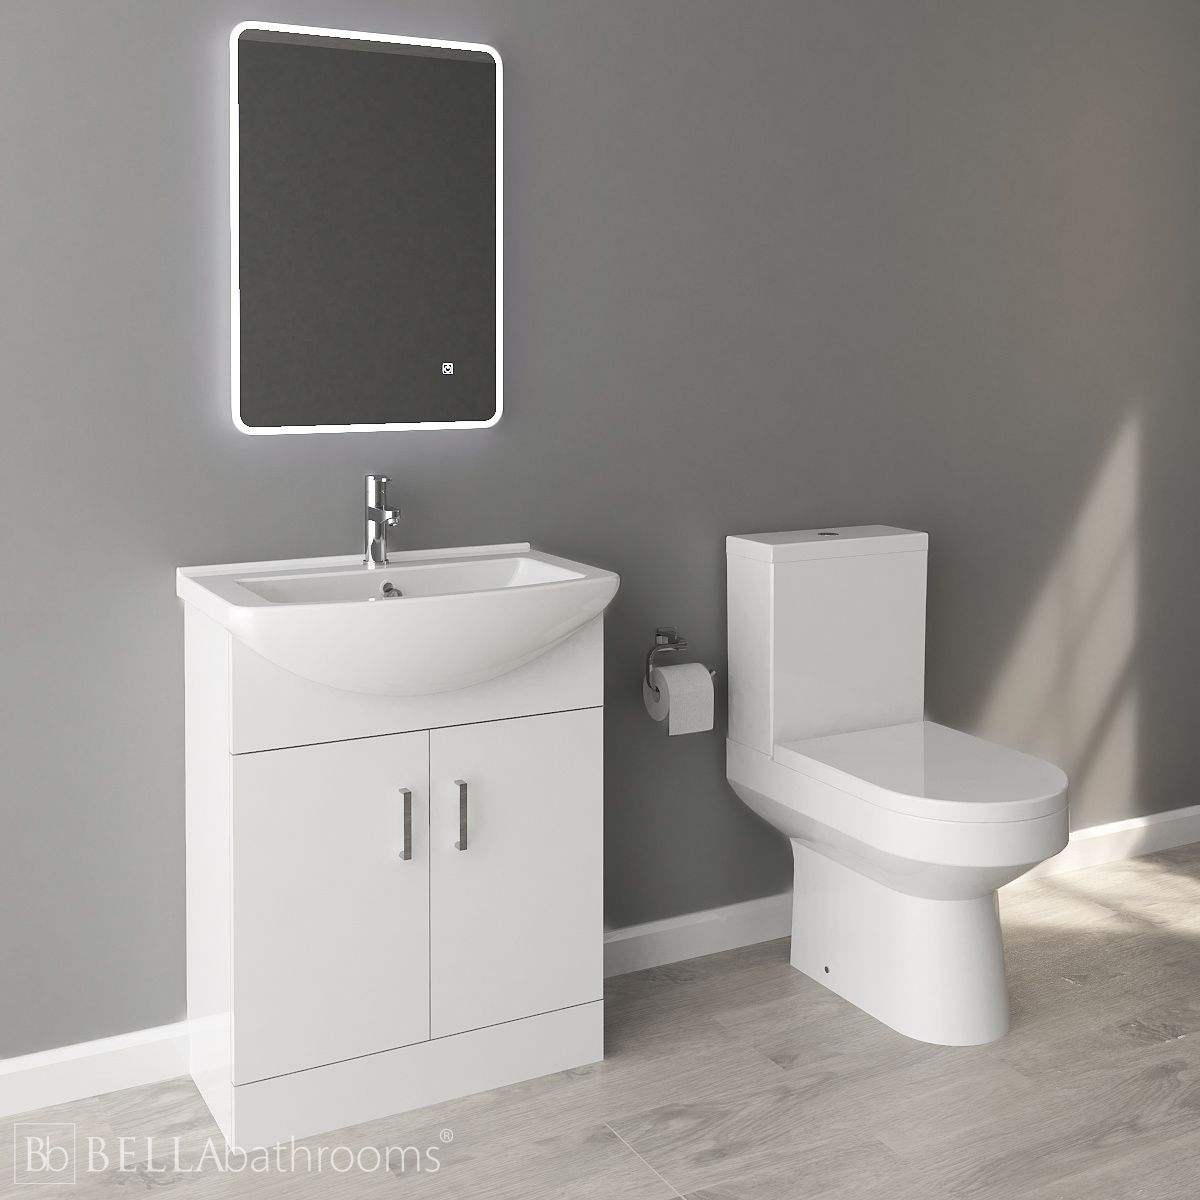 Nuie Deluxe High Gloss White Vanity Unit and Toilet Set 650mm